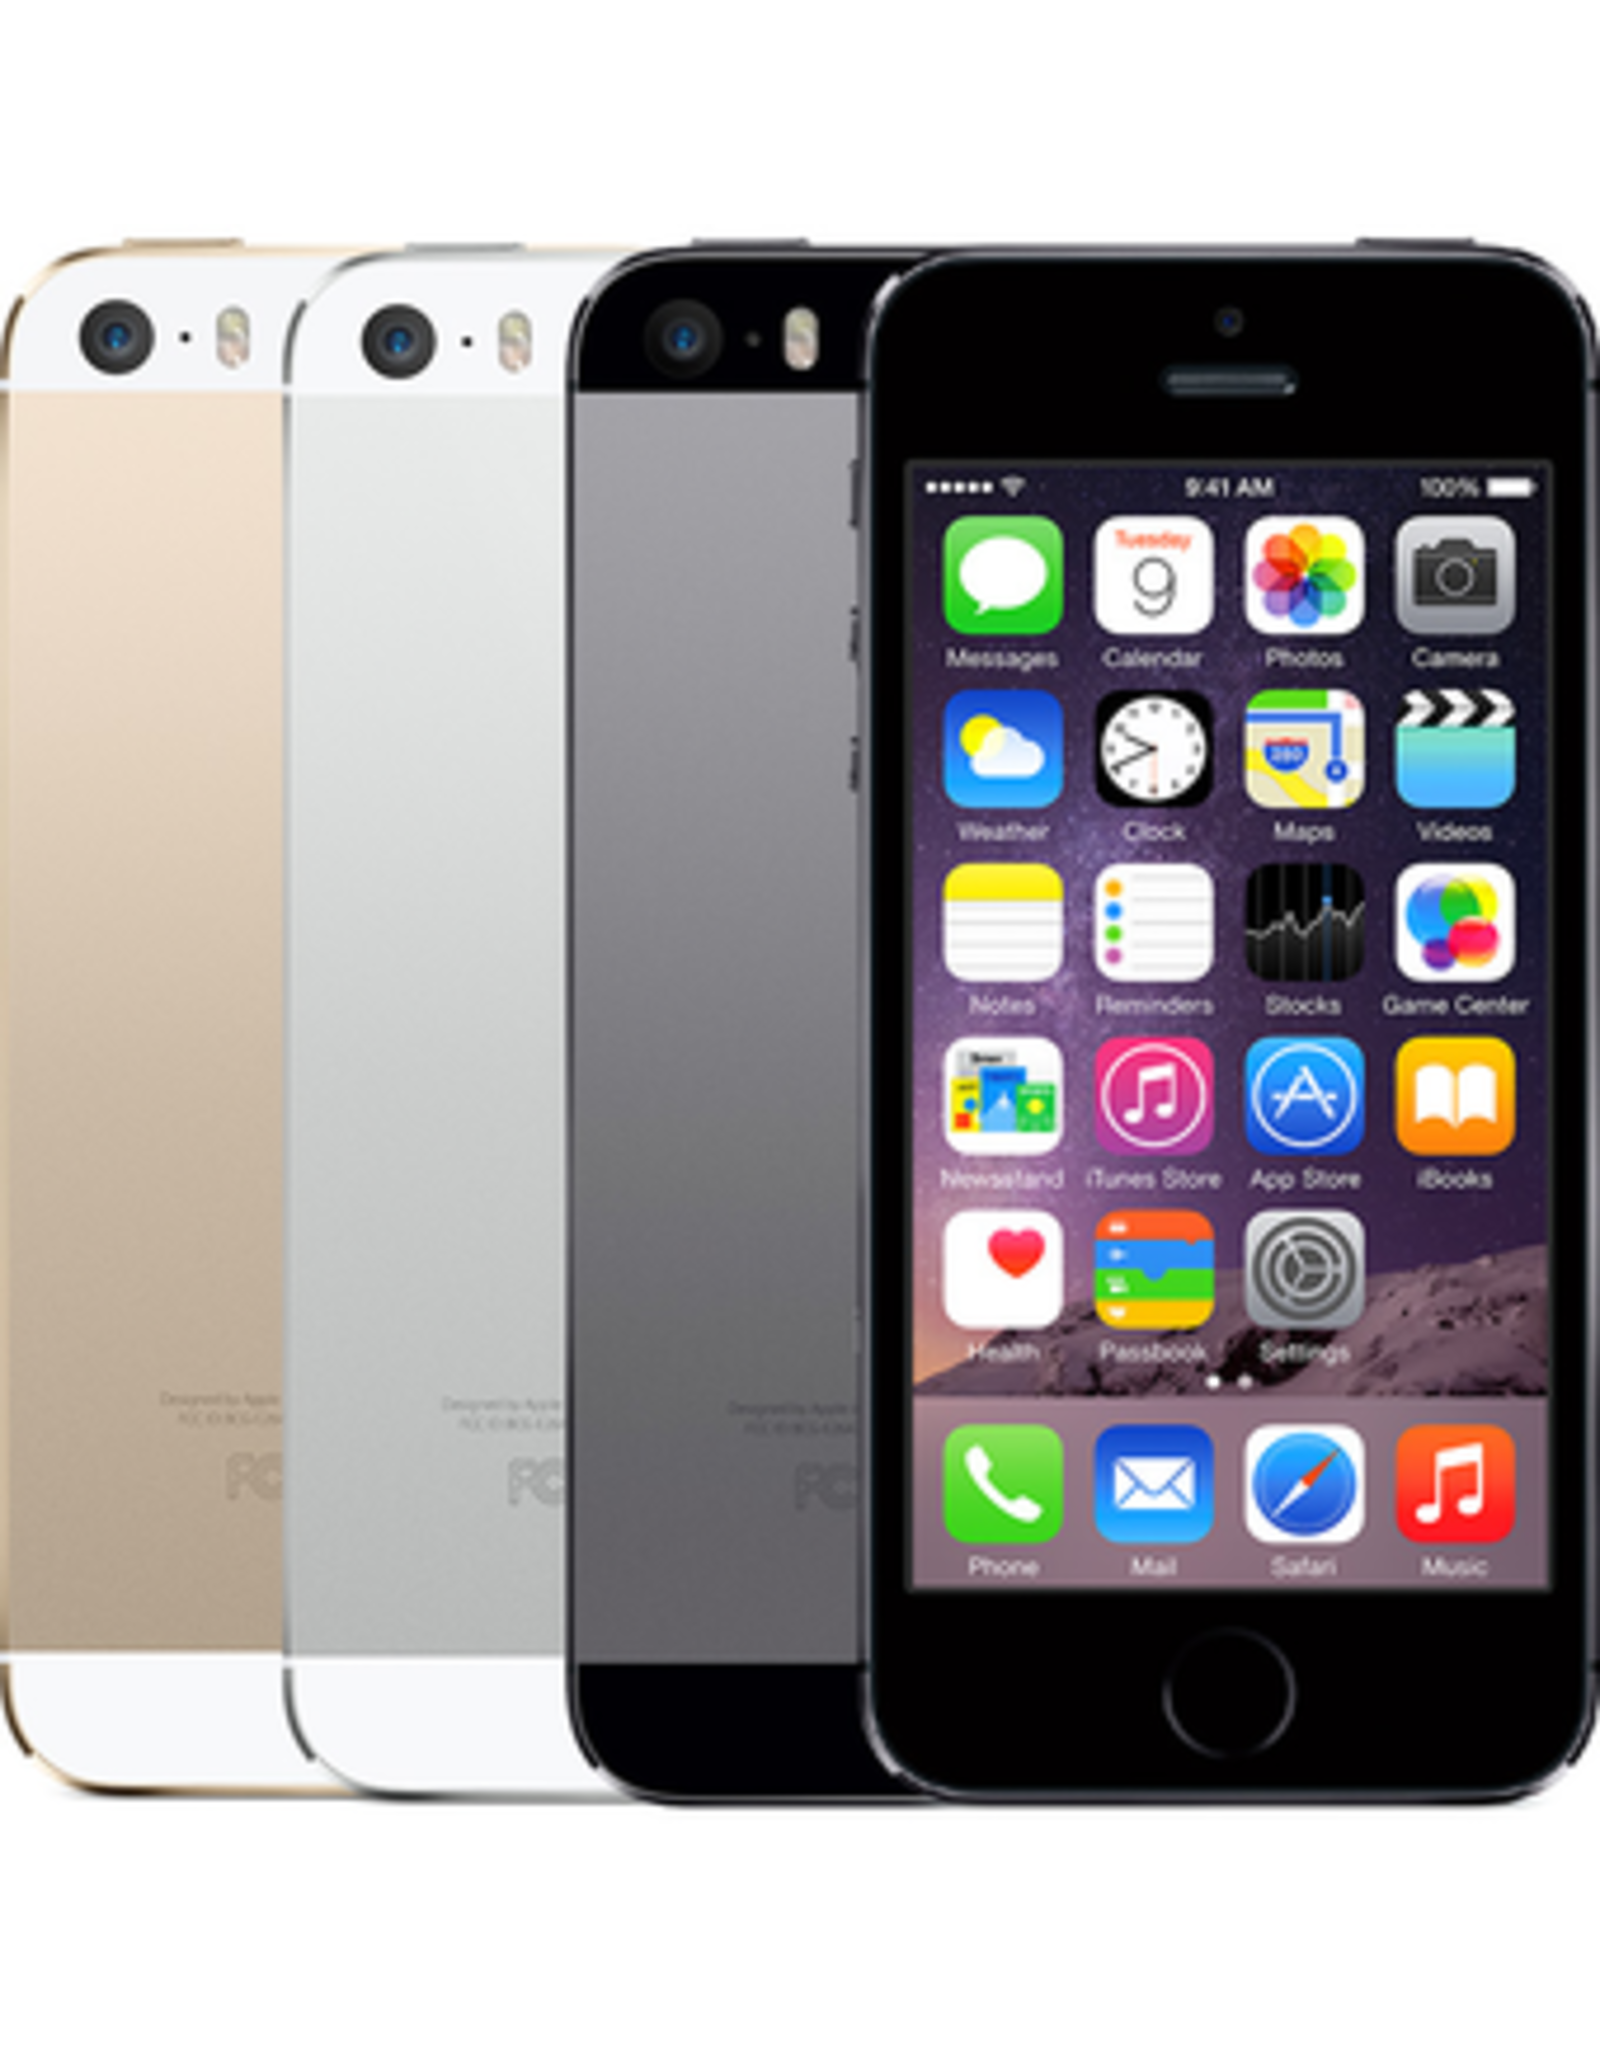 Apple iPhone 5s (16GB, Silver) - 30 Day Exchange